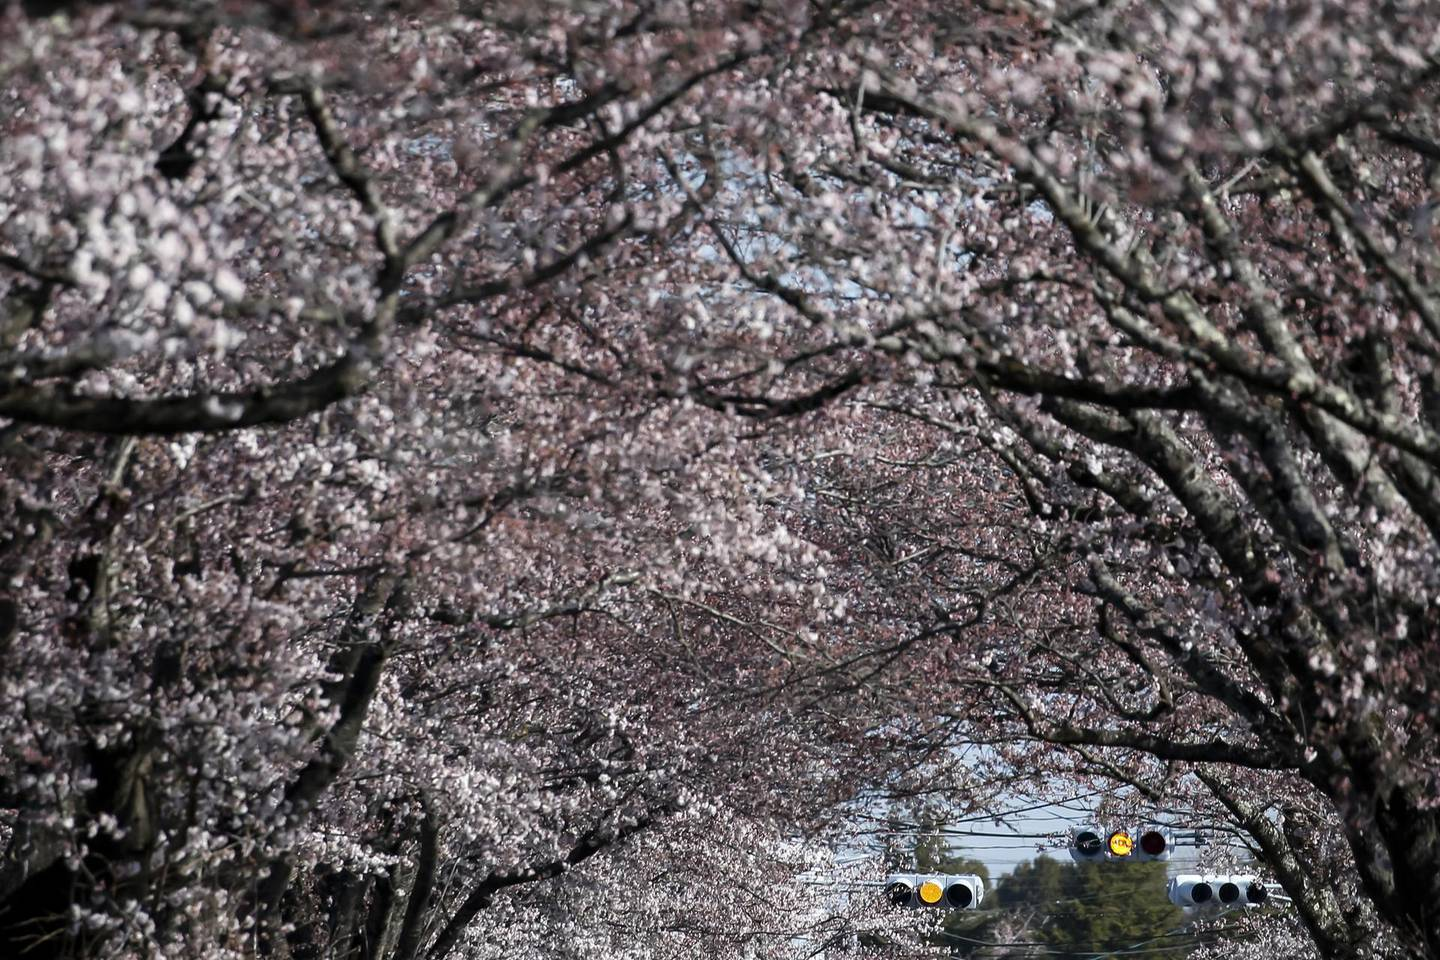 TOMIOKA, JAPAN - APRIL 06: Cherry trees are in bloom inside the difficult-to-return zone in the Yonomori area on April 6, 2019 in Tomioka, Fukushima, Japan. The tunnel with approximately 480 cherry trees in the area is partially located in the difficult-to-return zone designated by the government after the accident at Tokyo Electric Power Co.'s Fukushima Dai-ichi nuclear power plant in 2011. The municipal government arranged buses for former residents to the zone, where 6km away from the crippled nuclear plant, first time in 9 years to watch the cherry blossoms. (Photo by Tomohiro Ohsumi/Getty Images)